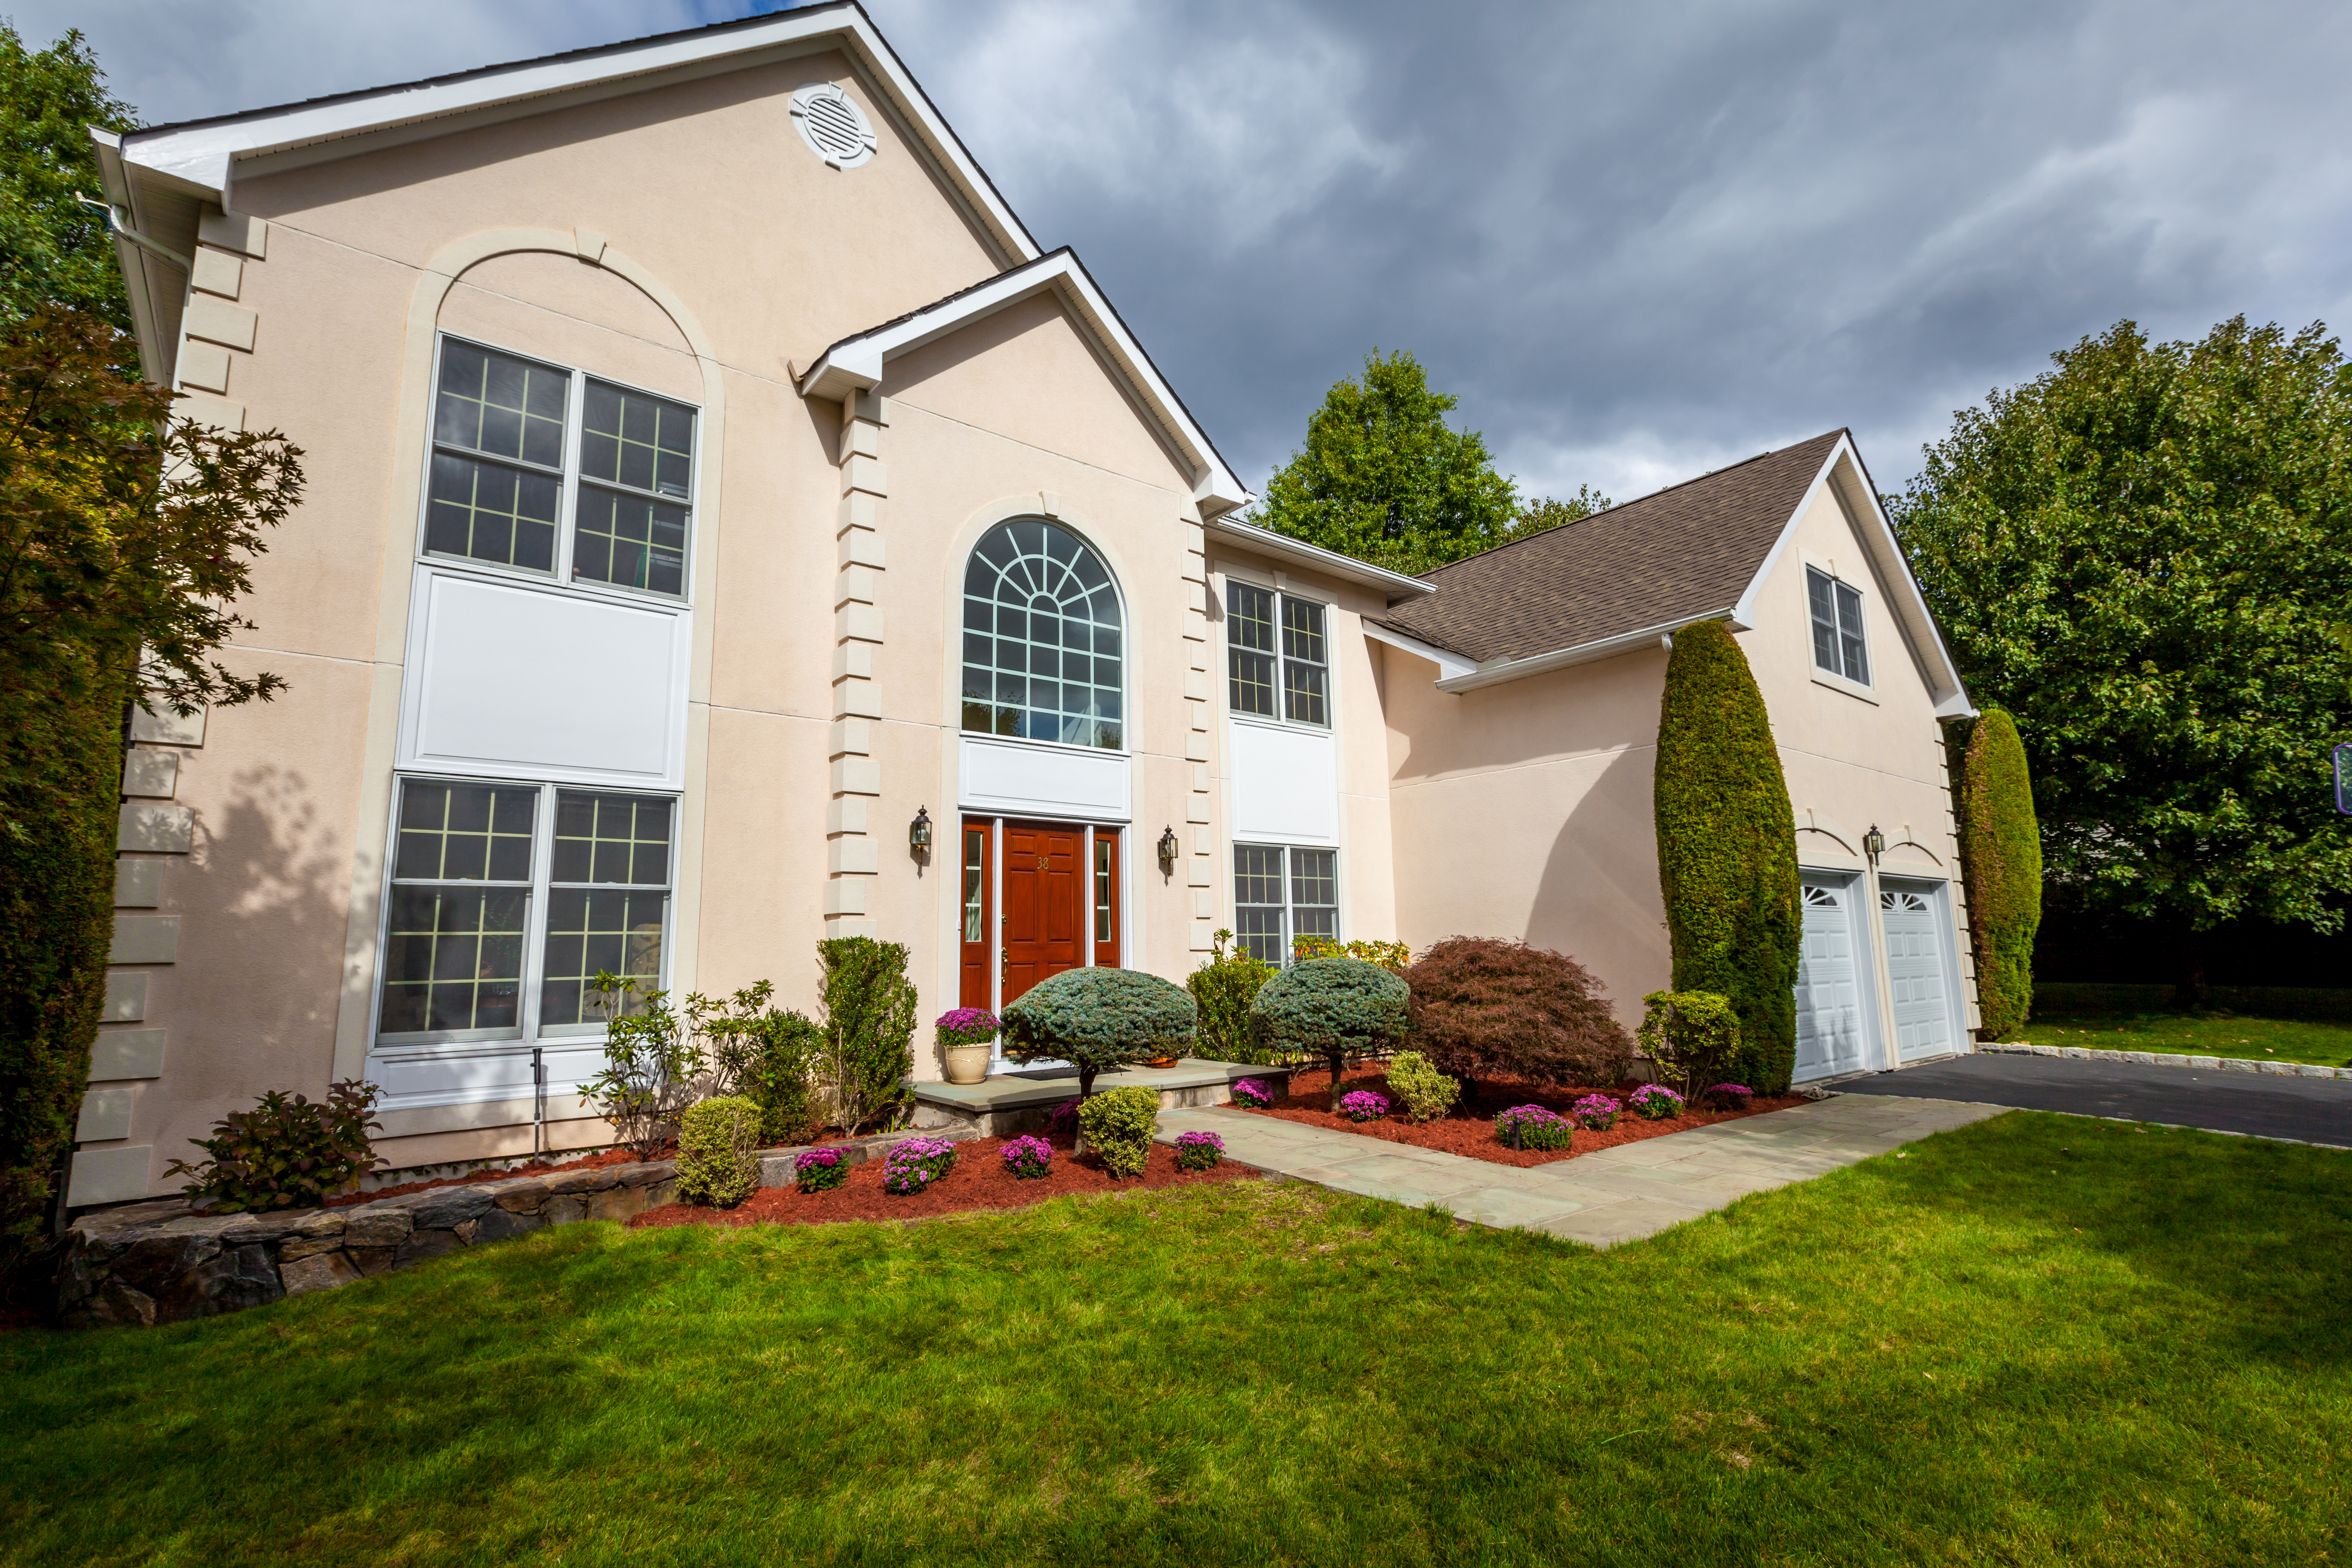 Single Family Home for Sale at Illuminating & Cheerful Center Hall Colonial 38 Sheldon Street Ardsley, New York, 10502 United States